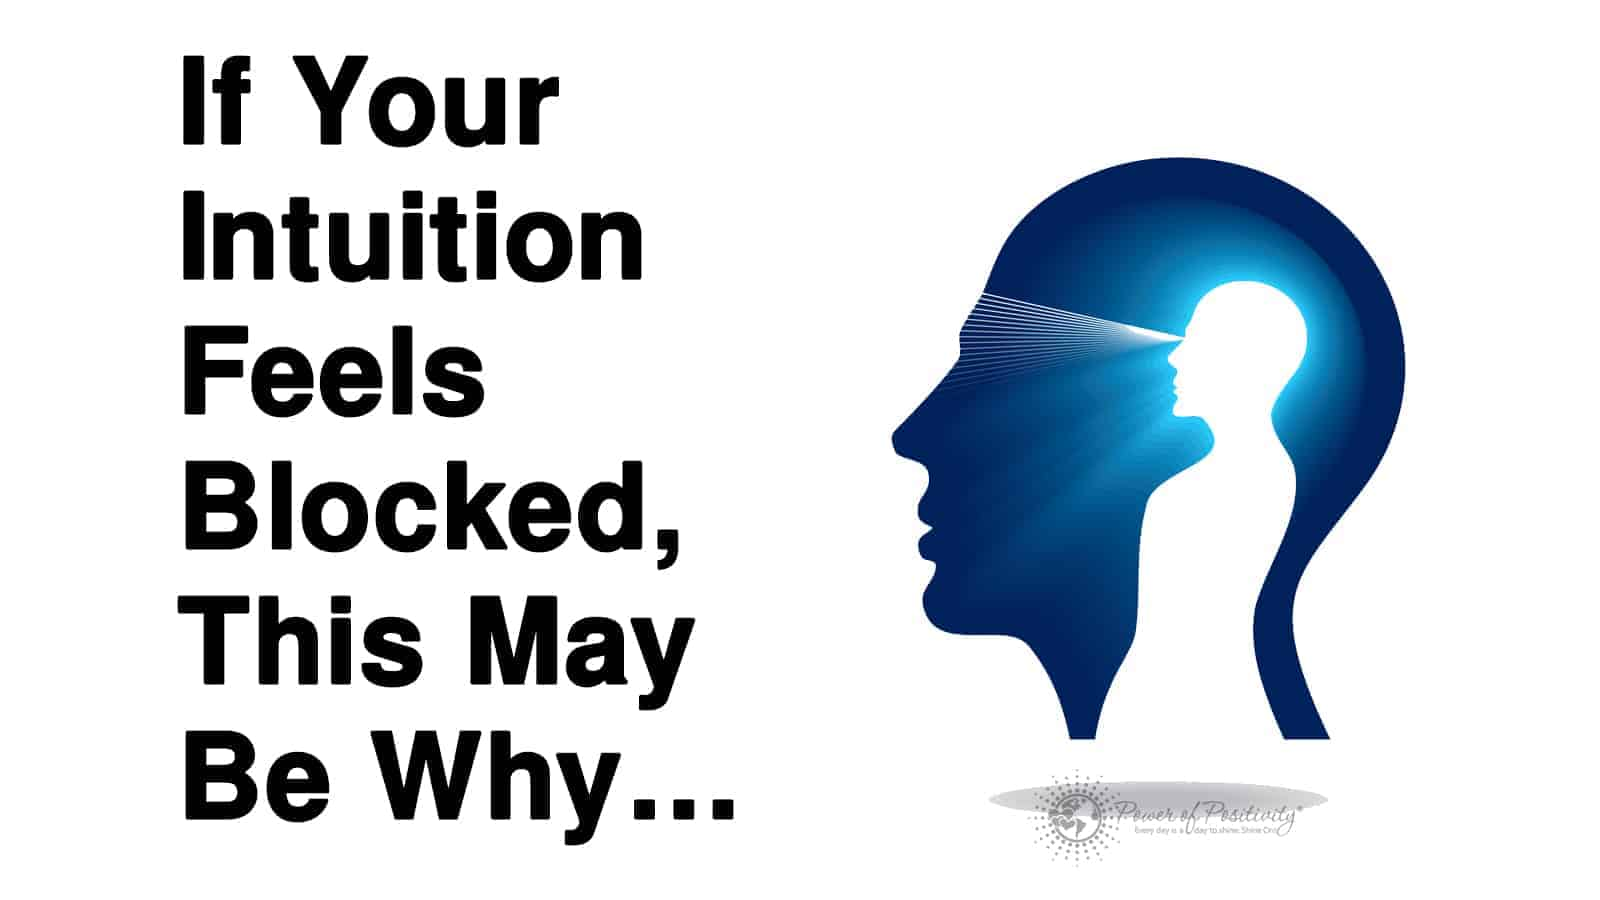 If Your Intuition Feels Blocked, This May Be Why